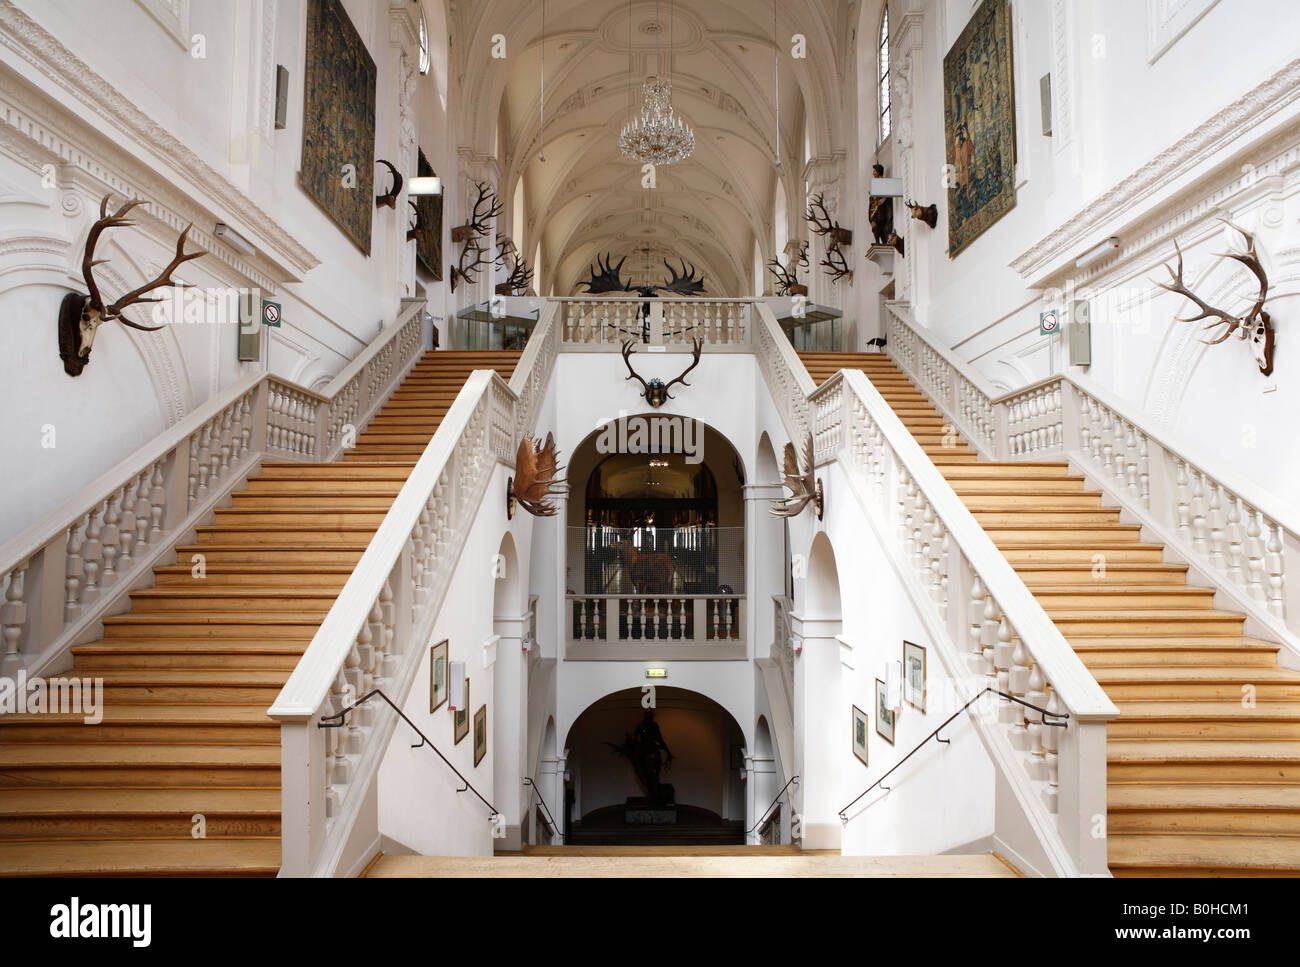 Staircase, White Hall, Deutsches Jagd- und Fischereimuseum, German Hunting and Fishing Museum in the former Augustinerkirche - Stock Image